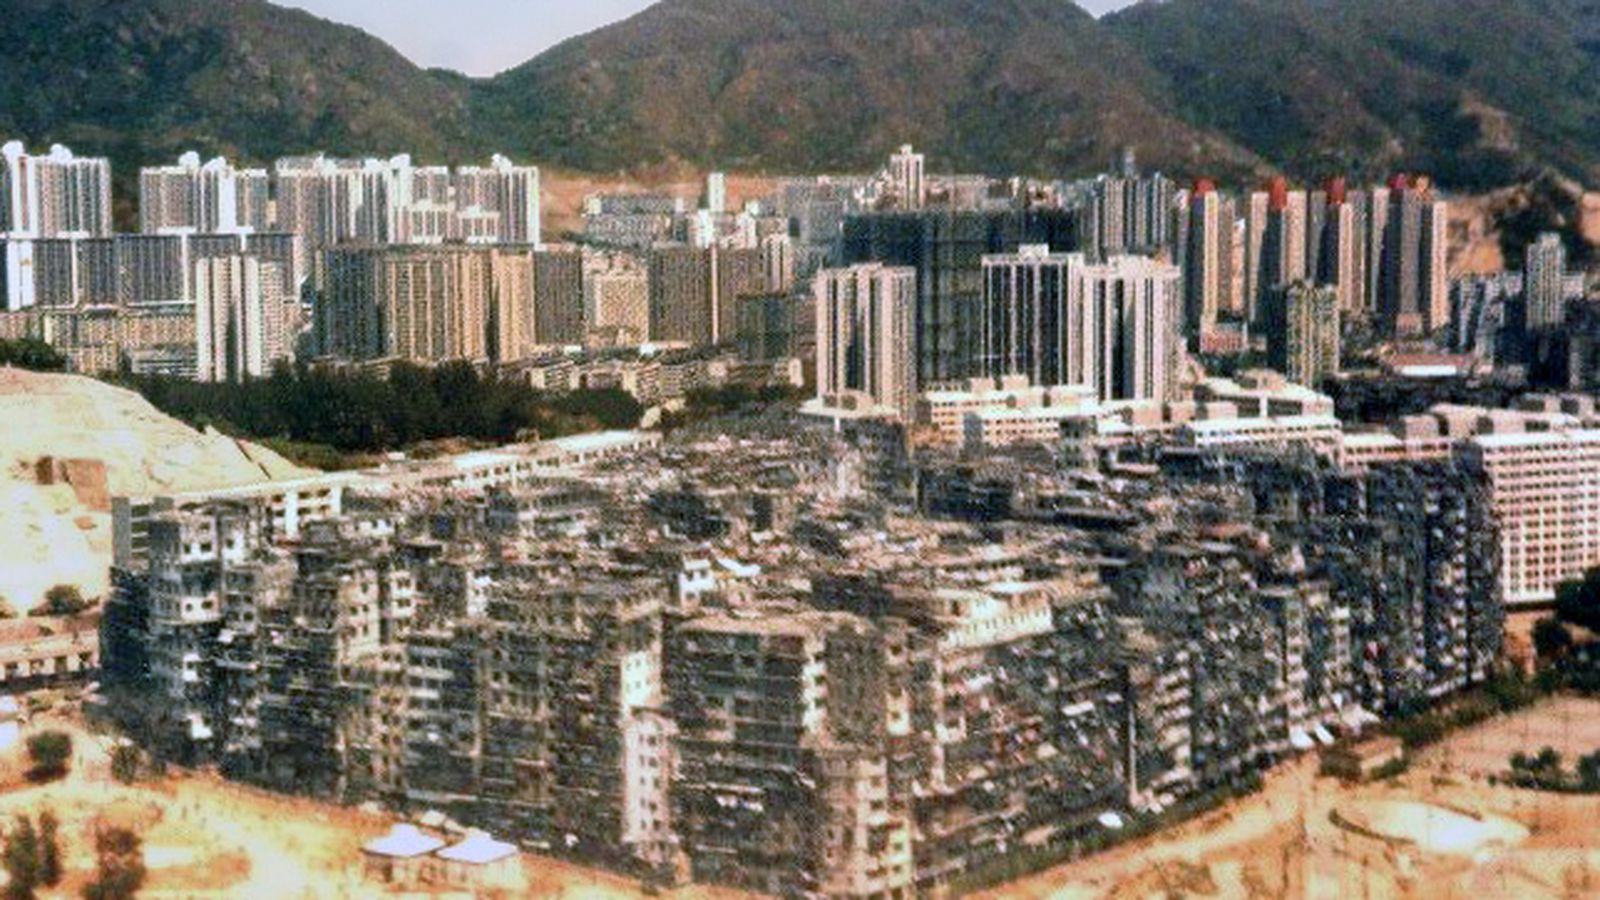 Life in Kowloon Walled City, the self-sustaining city of